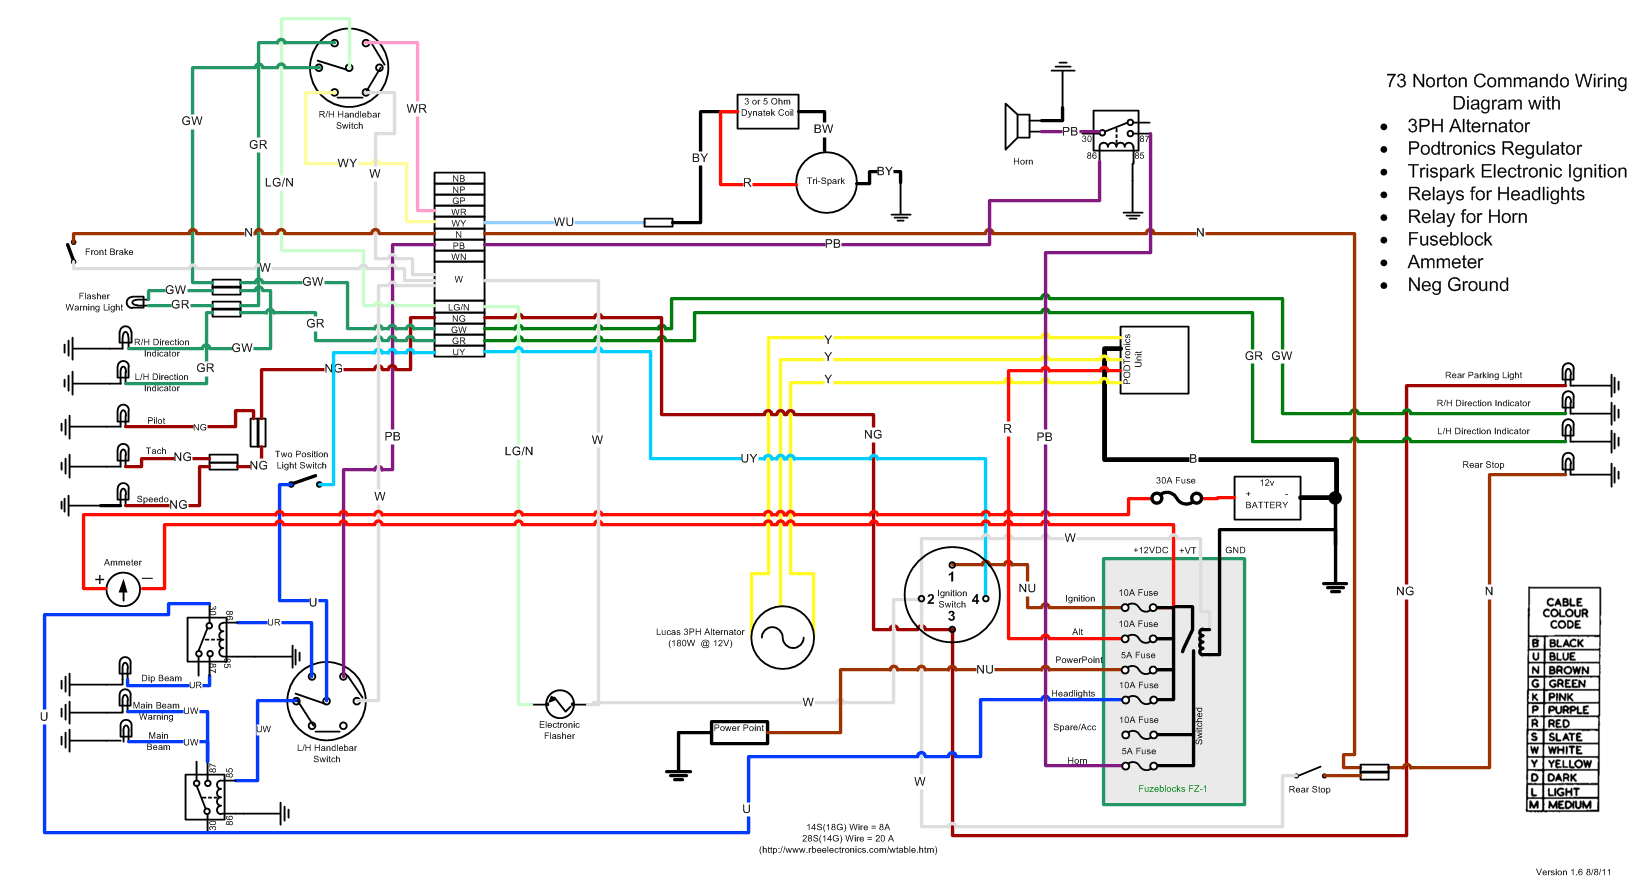 hight resolution of visio circuit diagram wiring diagram forward visio wiring diagram tutorial circuit diagram visio wiring diagram forward